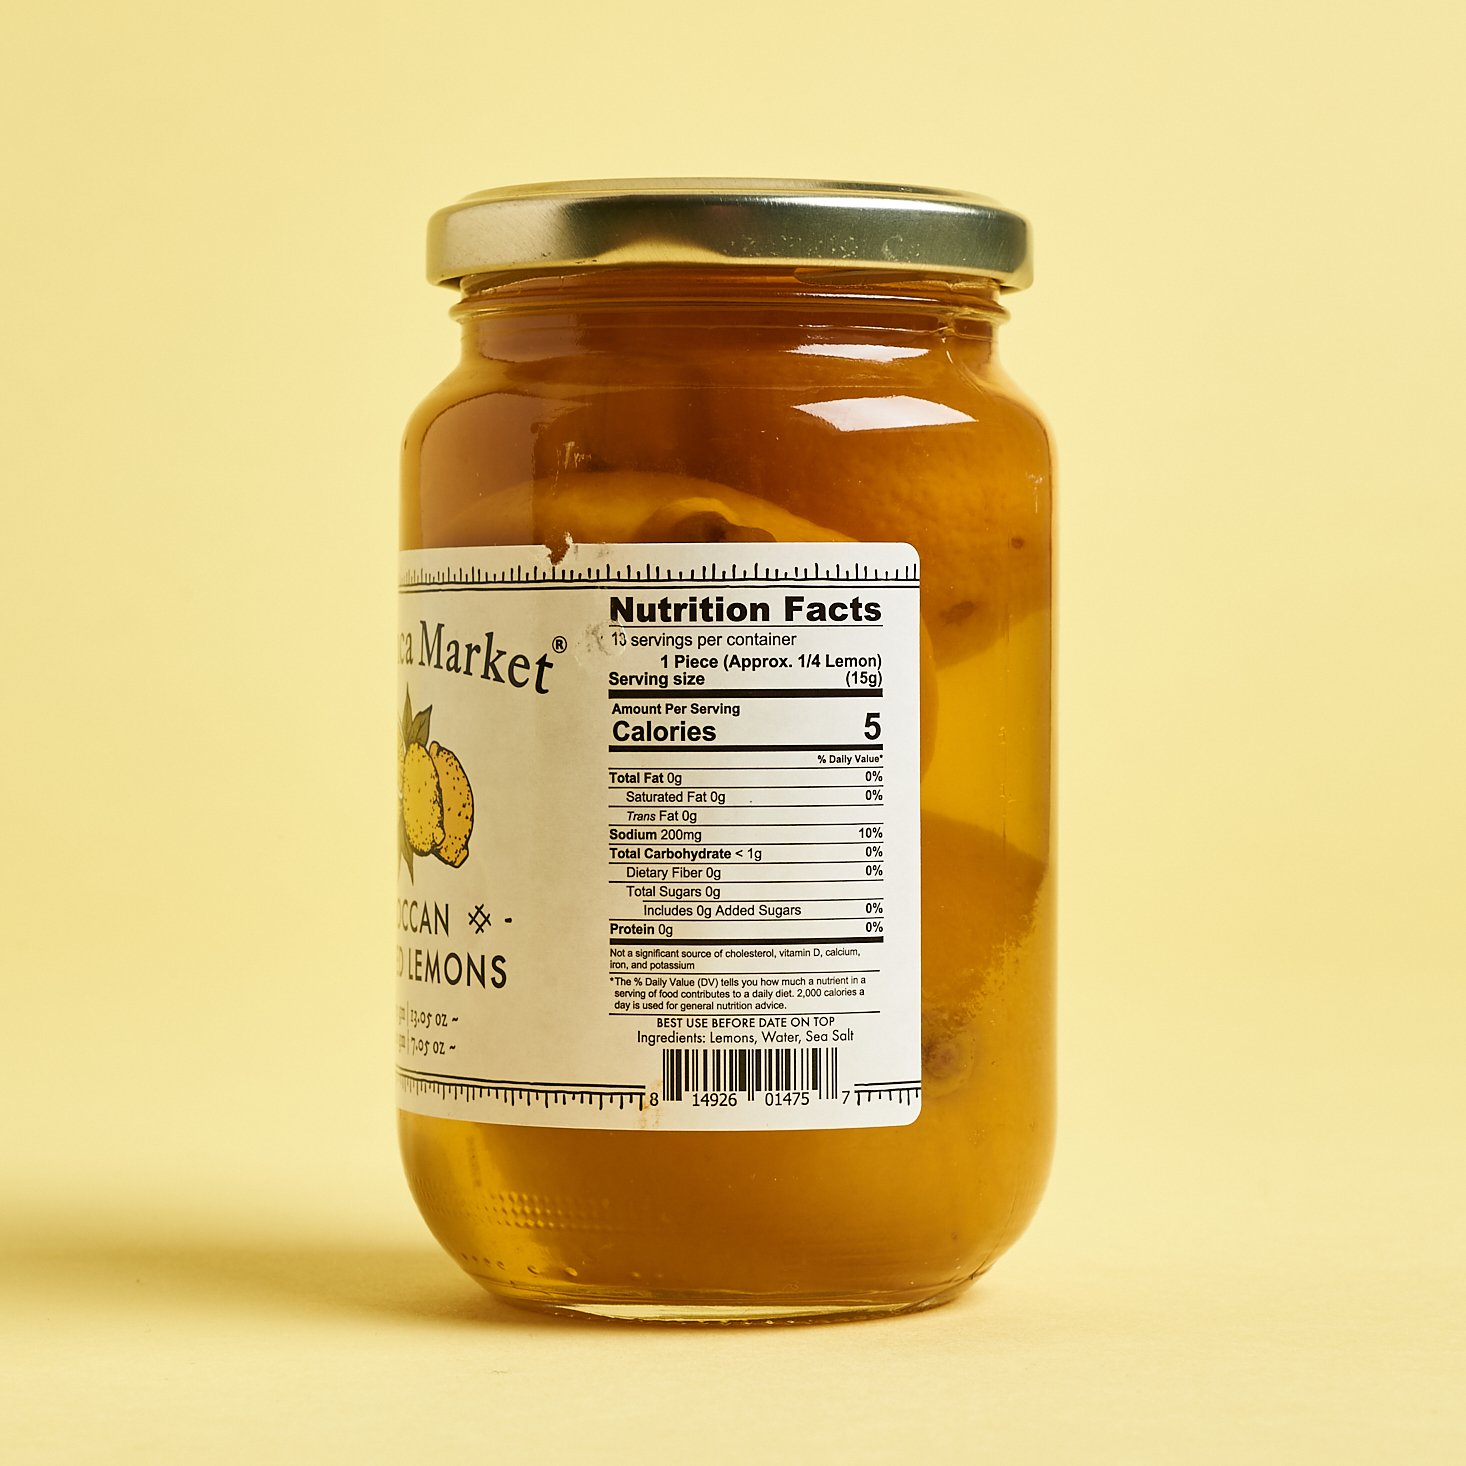 The nutritional facts of the preserved lemons